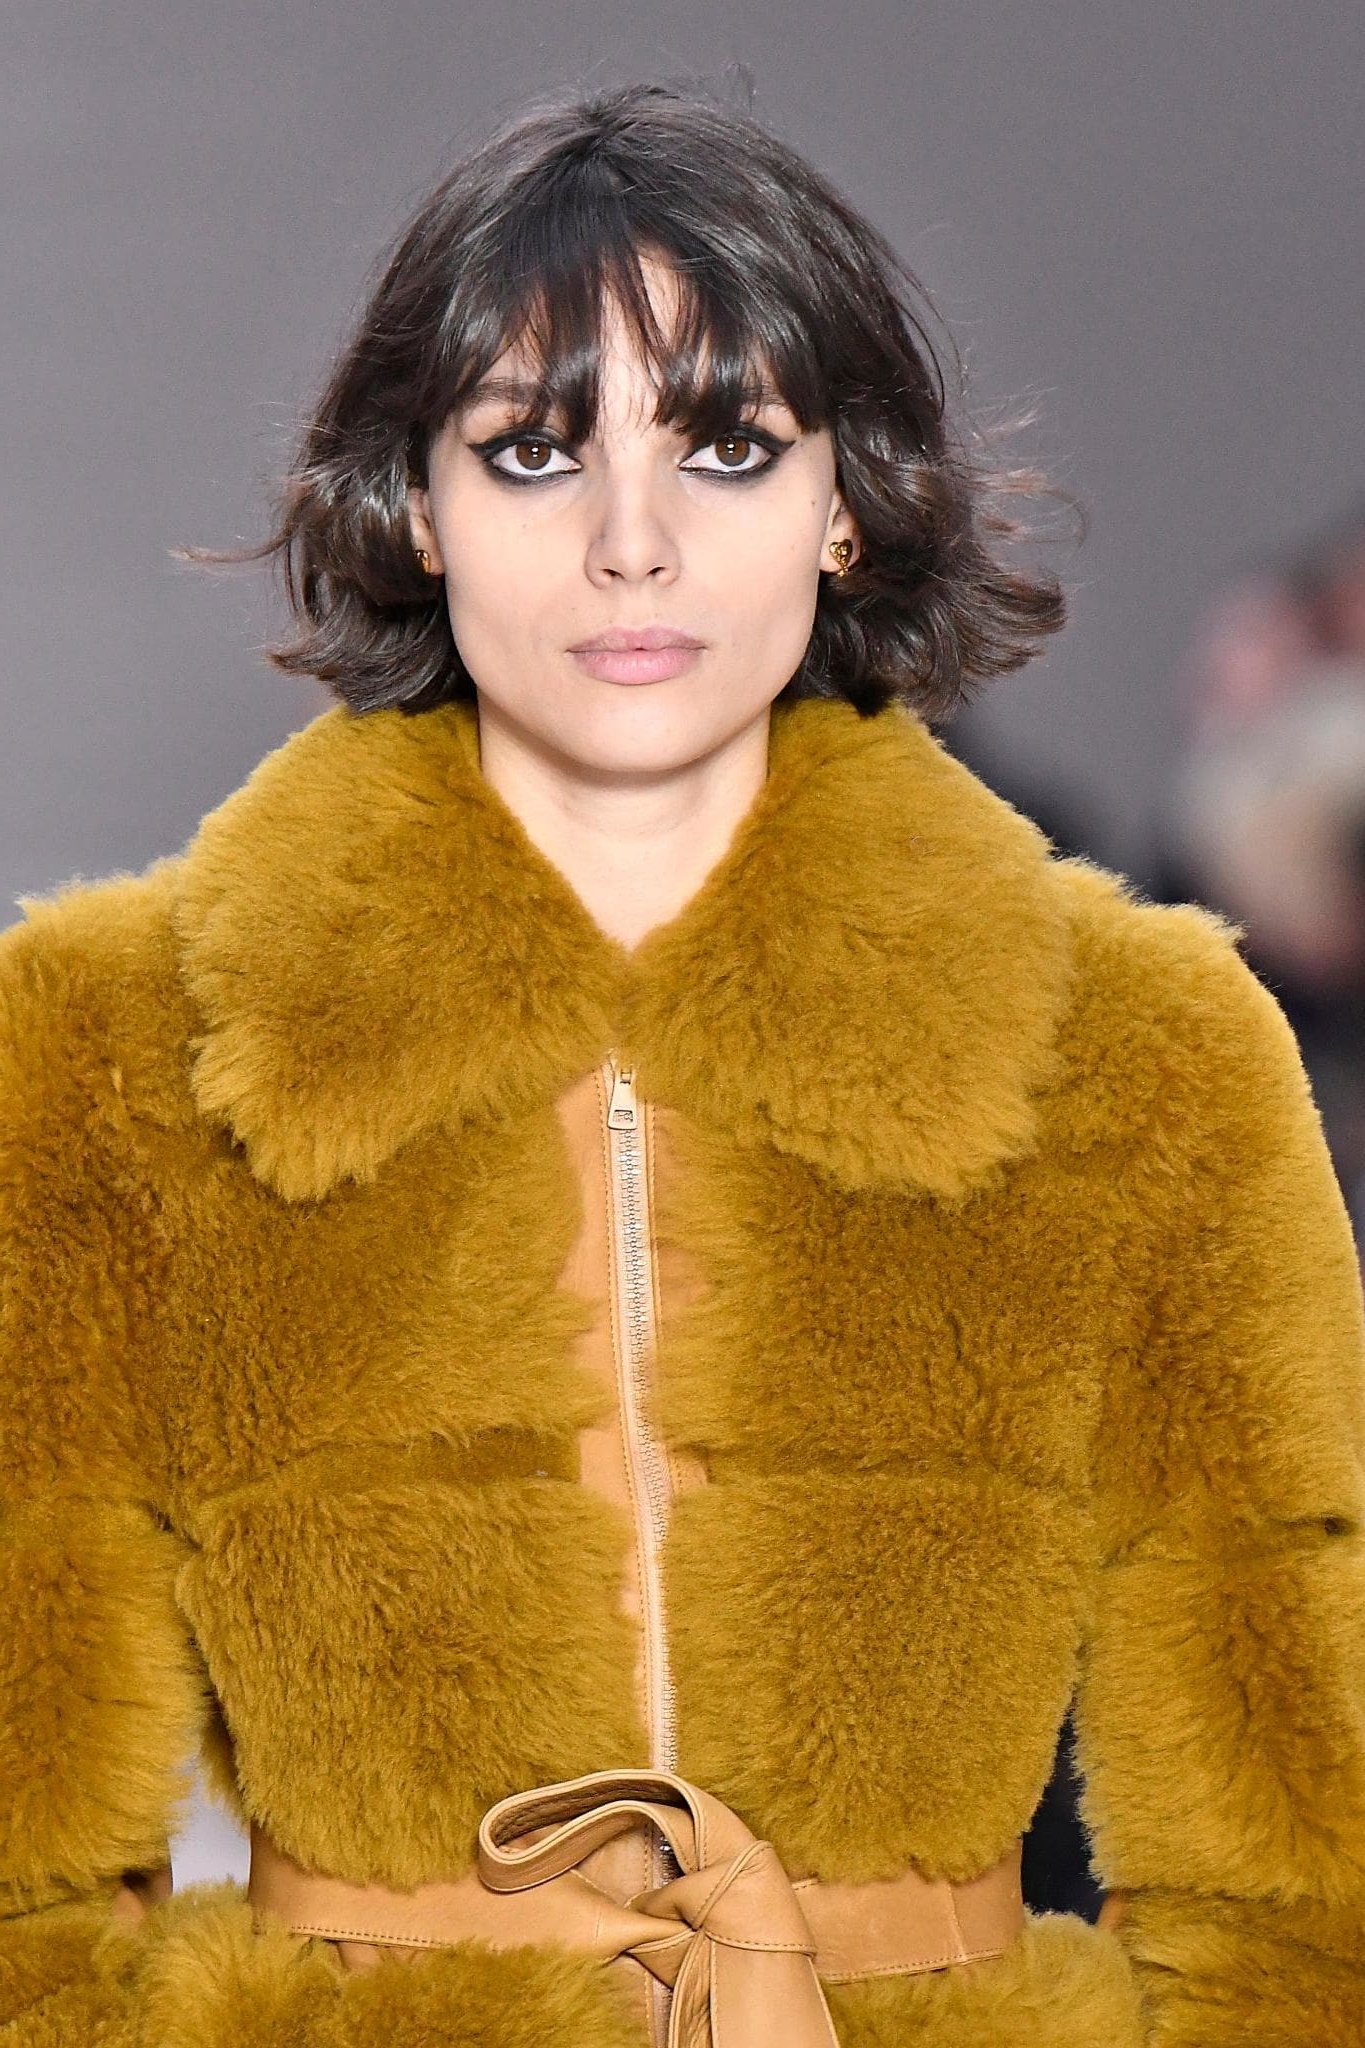 Tousled Short Hair: Get The Runway Look On Any Hair Type Regarding Tousled Short Hairstyles (View 19 of 25)